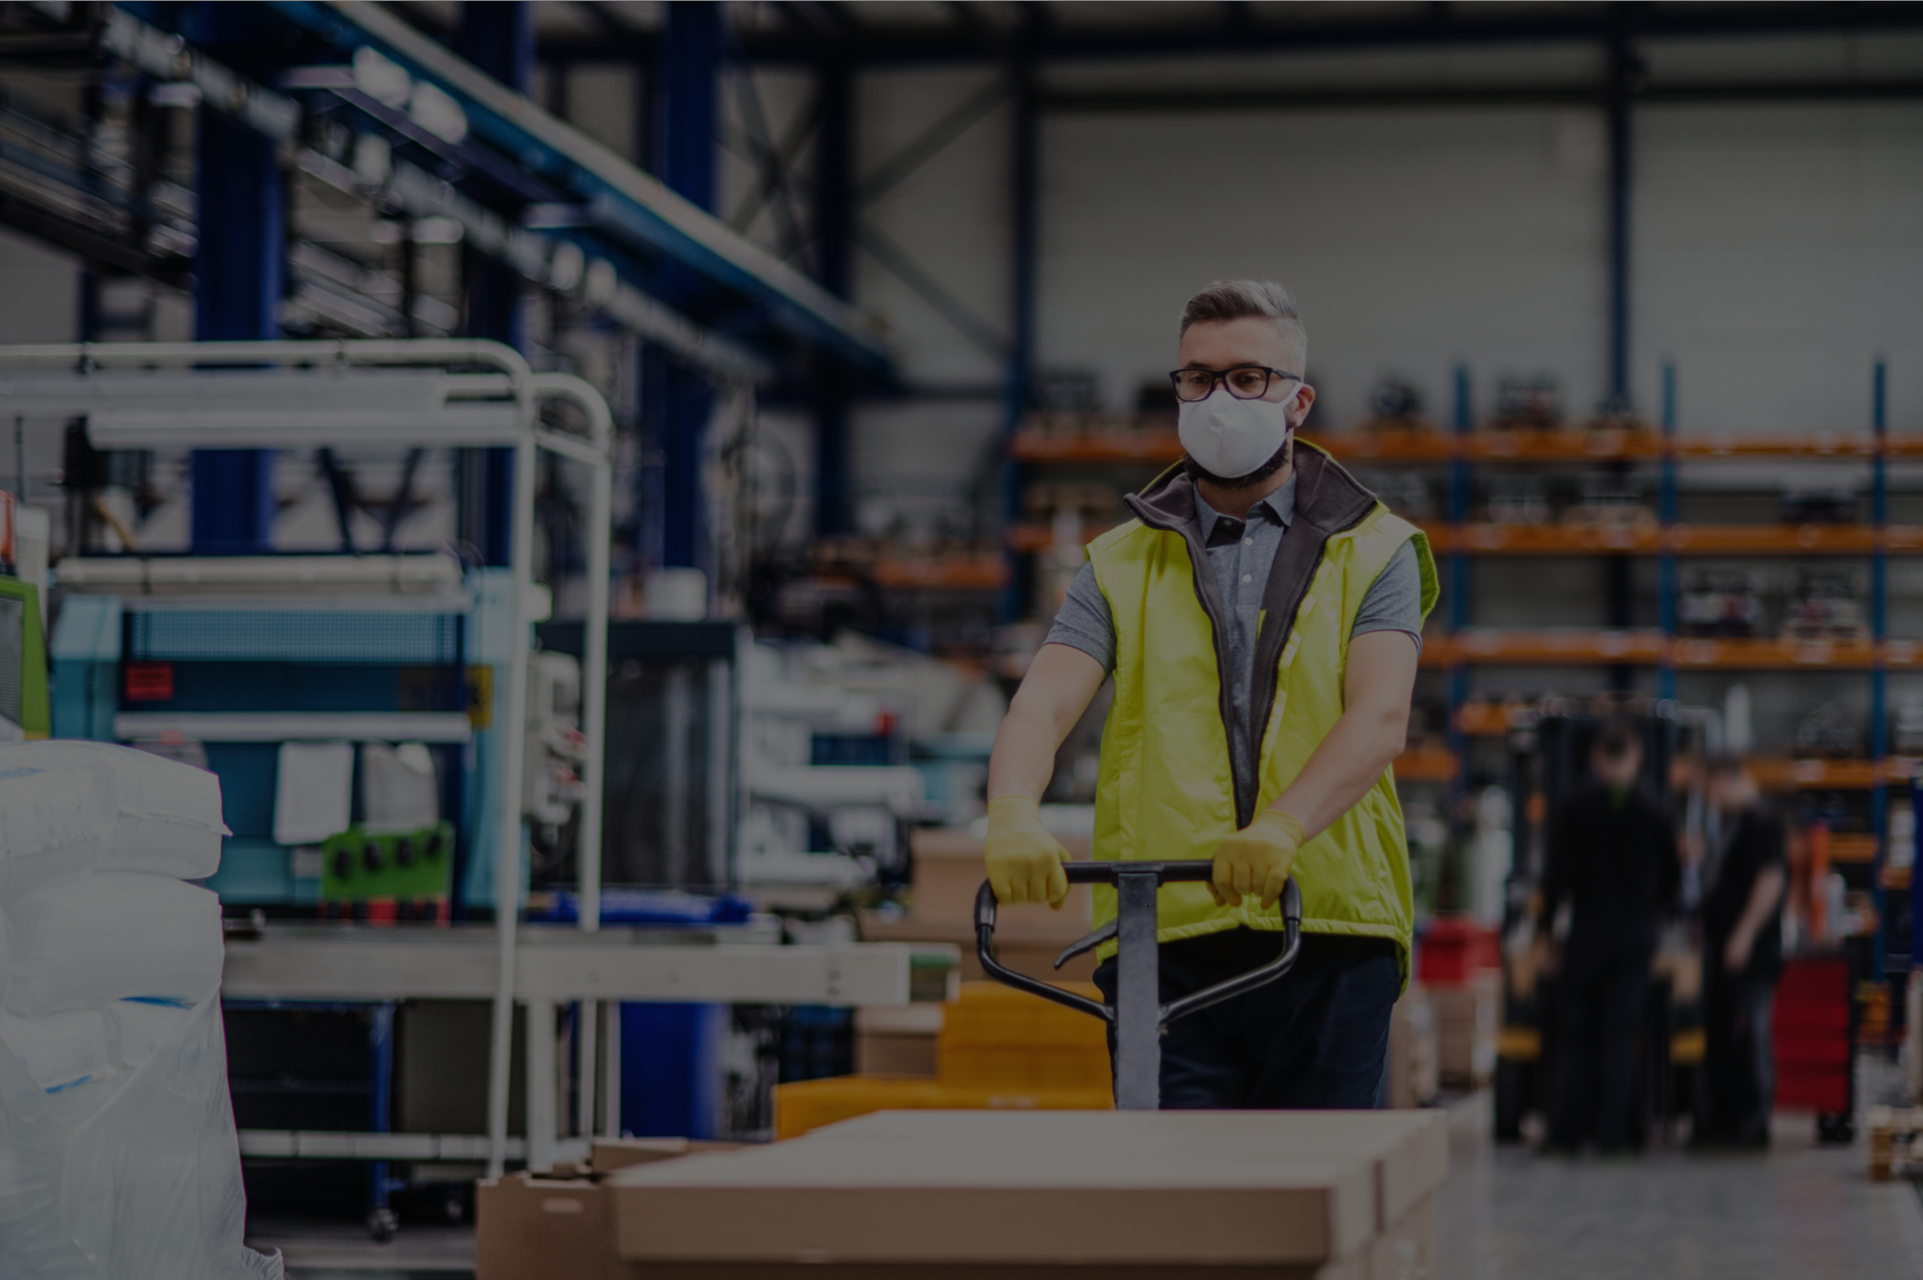 Revisiting COVID-19 Risks - 10 Ways to Keep Warehousing Operations Consistently Secure